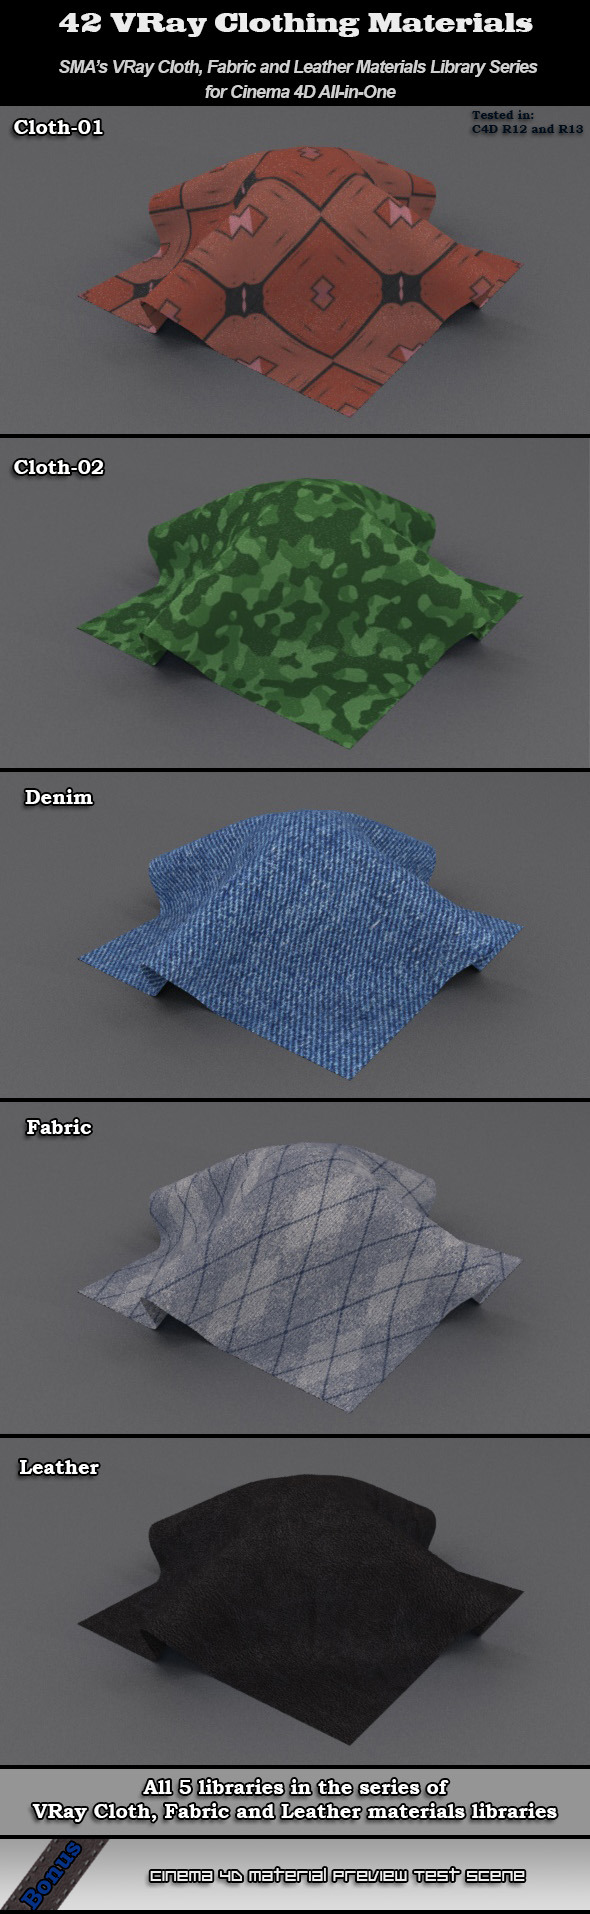 SMA's Vray Clothing Libraries AIO for Cinema 4D - 3DOcean Item for Sale